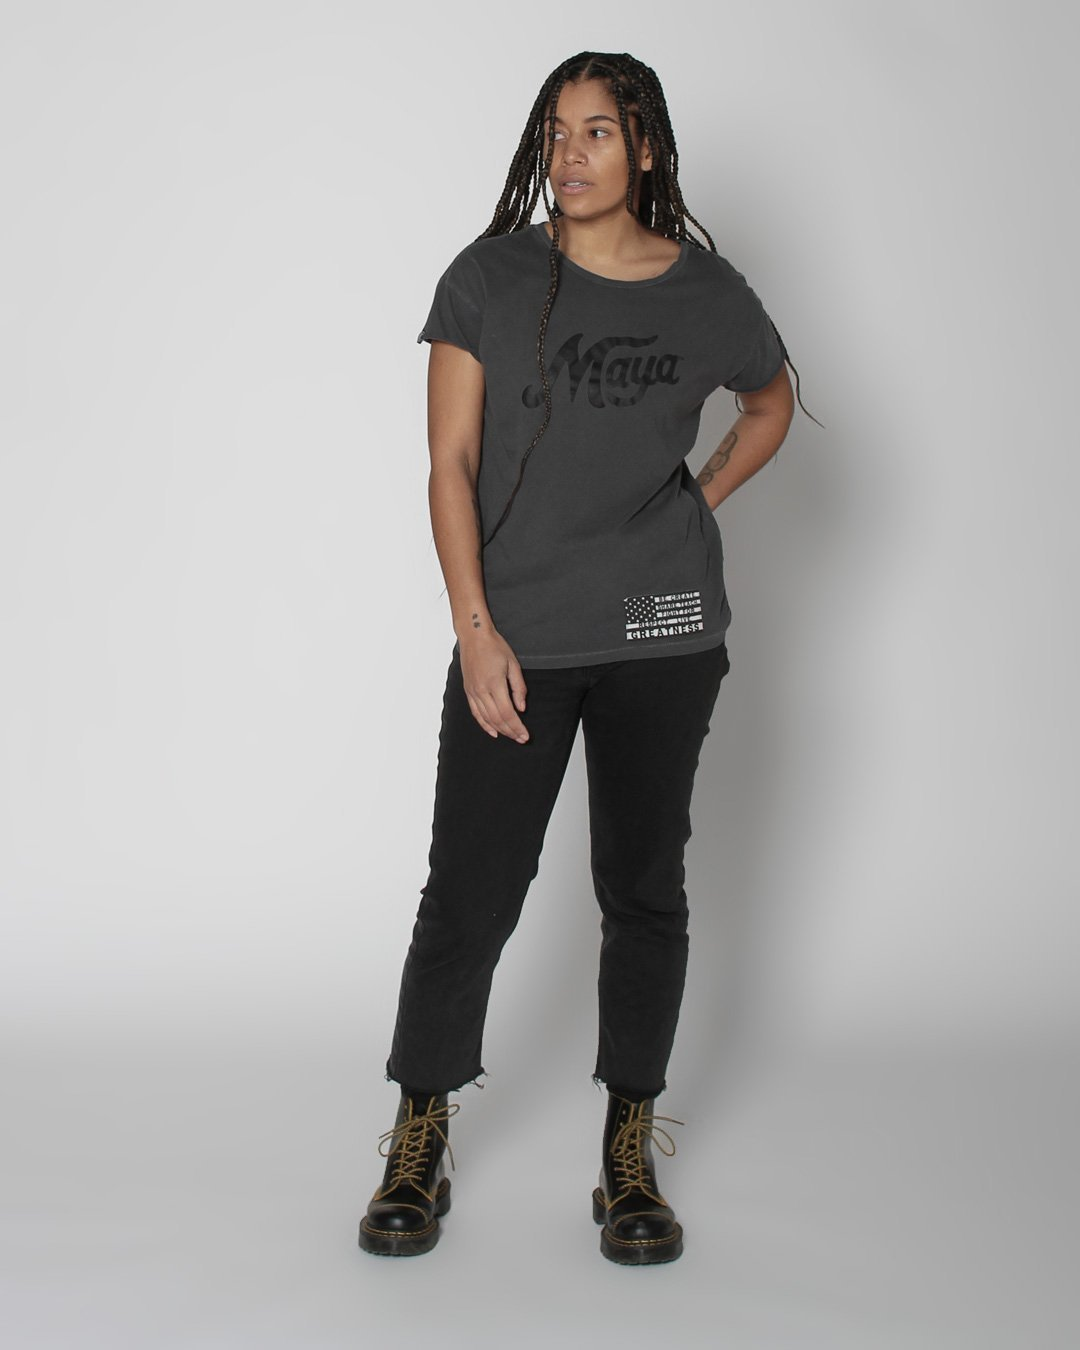 BHT - Maya Women's Tee - Roots of Inc dba Roots of Fight